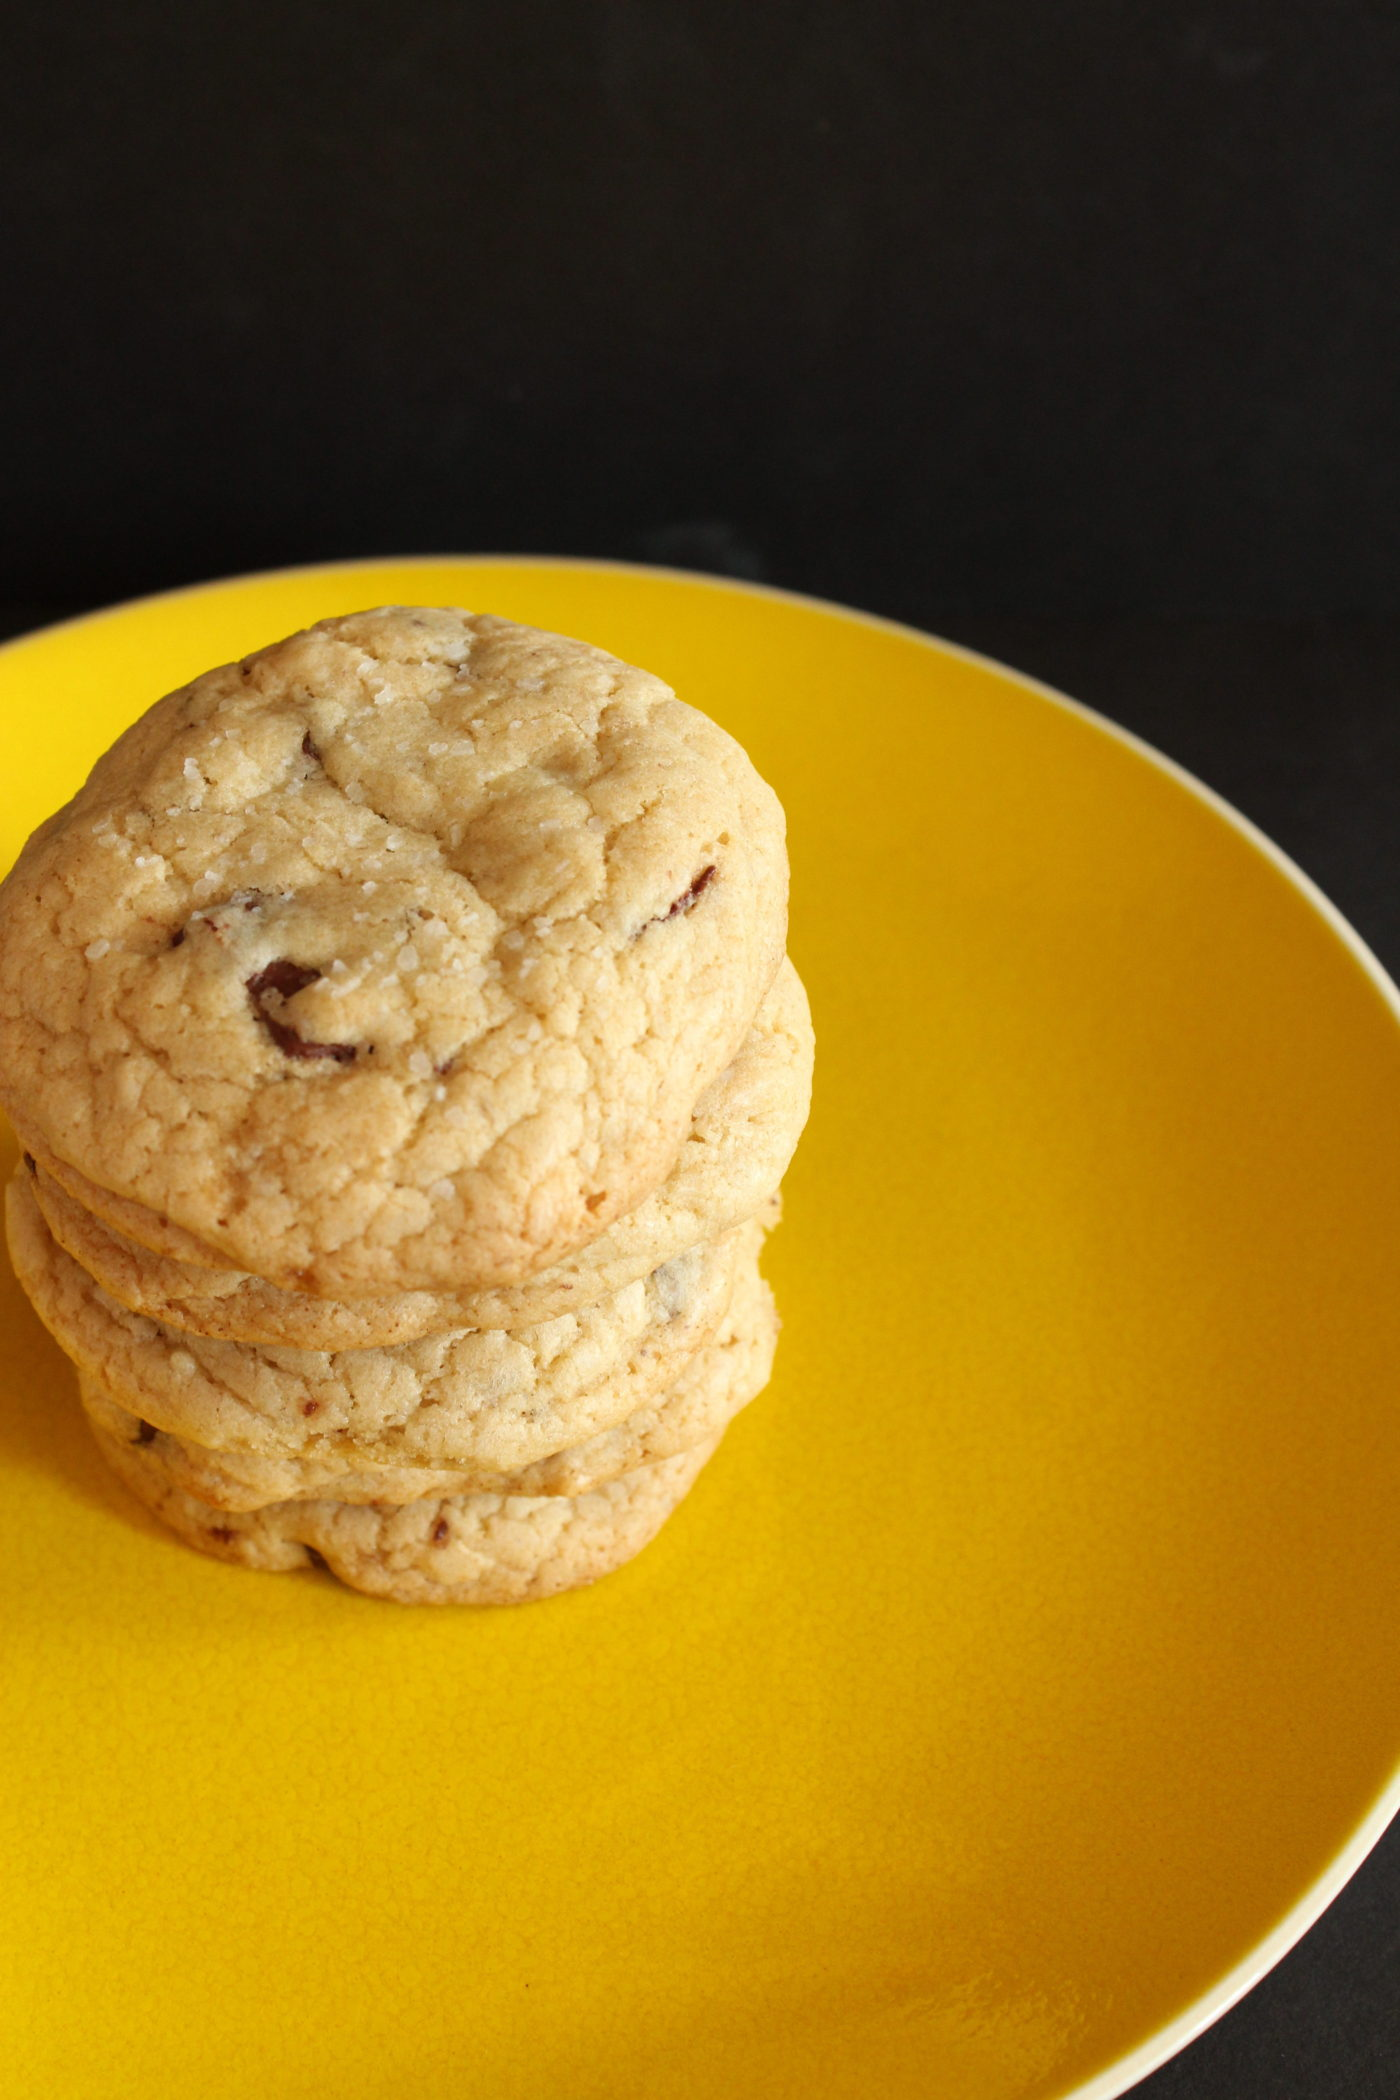 Chocolate chip cookies stacked on yellow plate